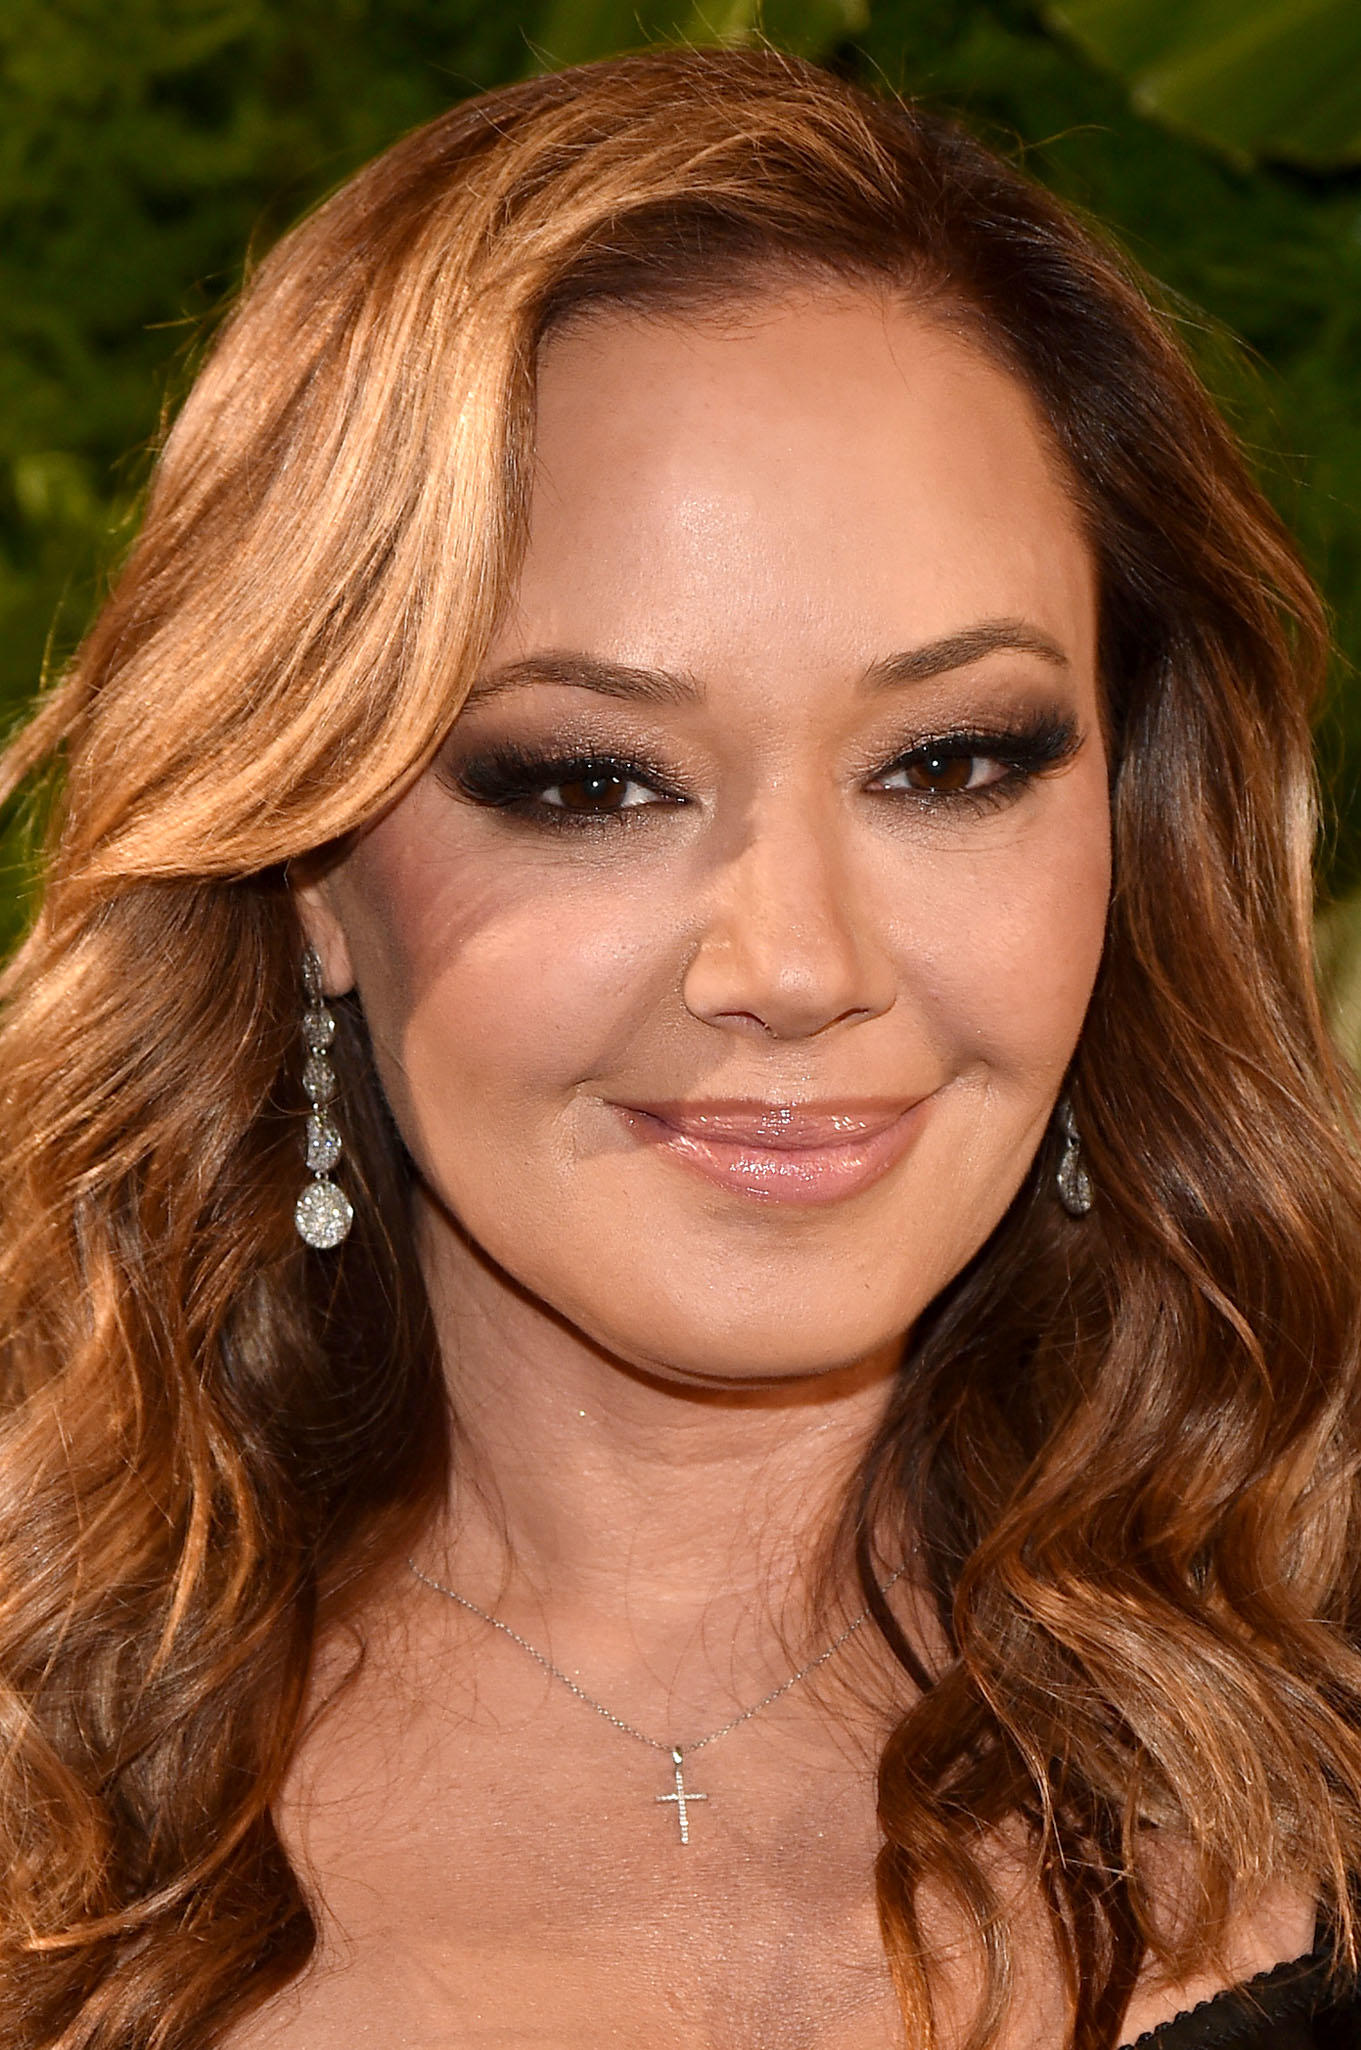 leah remini pictures and photos